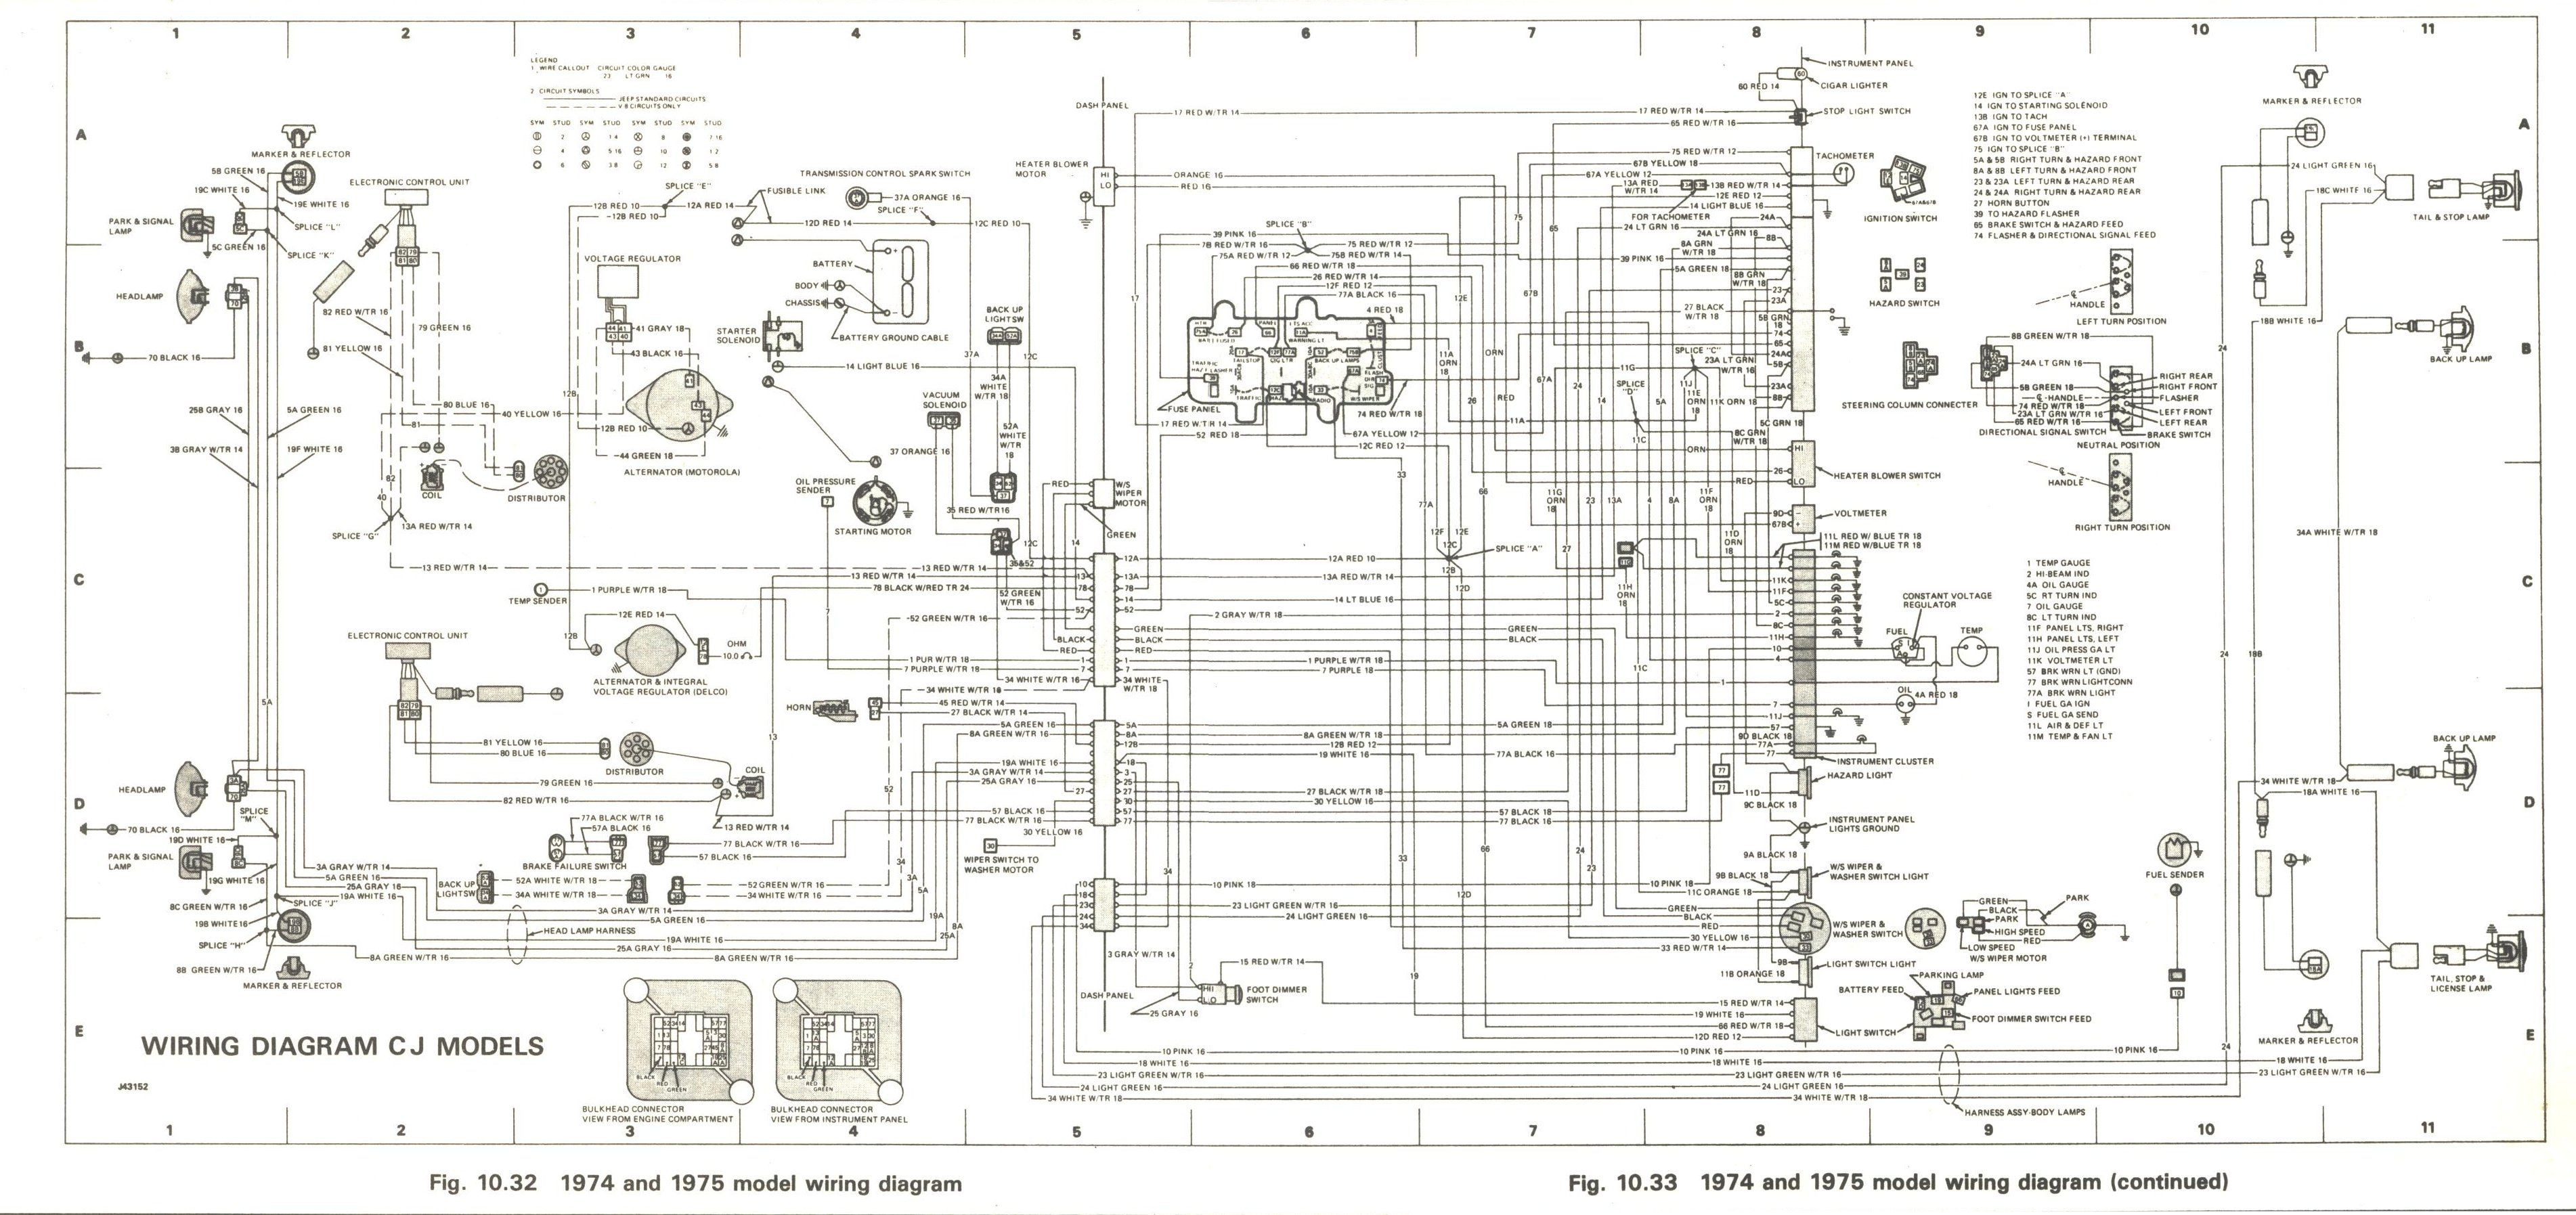 1980 cj5 wiring diagram furthermore jeep cj7 tachometer wiring diagram along with jeep cj5 steering column [ 3805 x 1795 Pixel ]